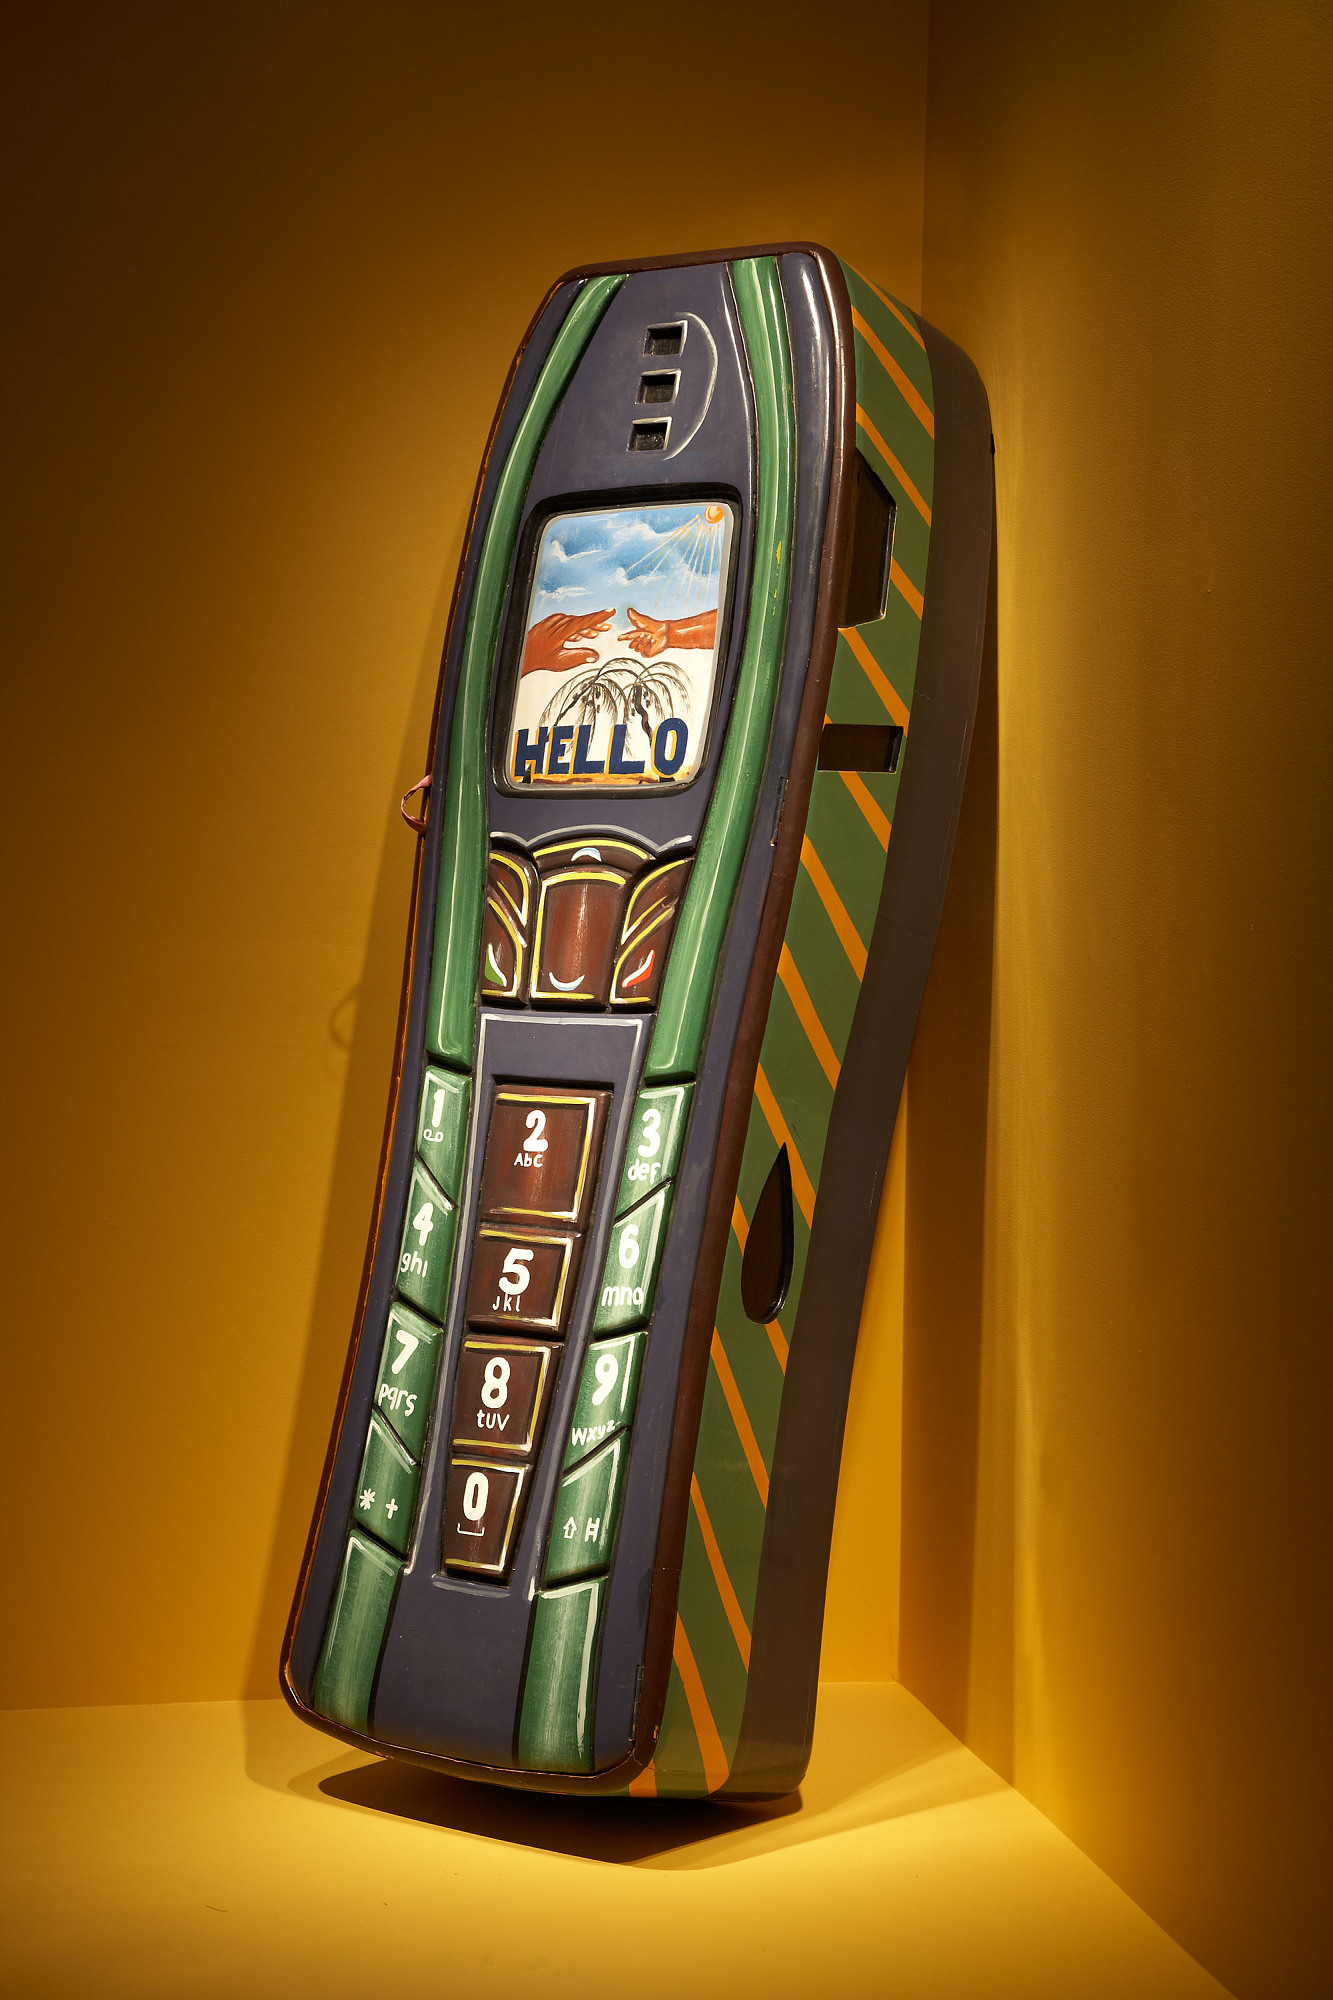 images for <I>Nokia cell phone coffin</I>